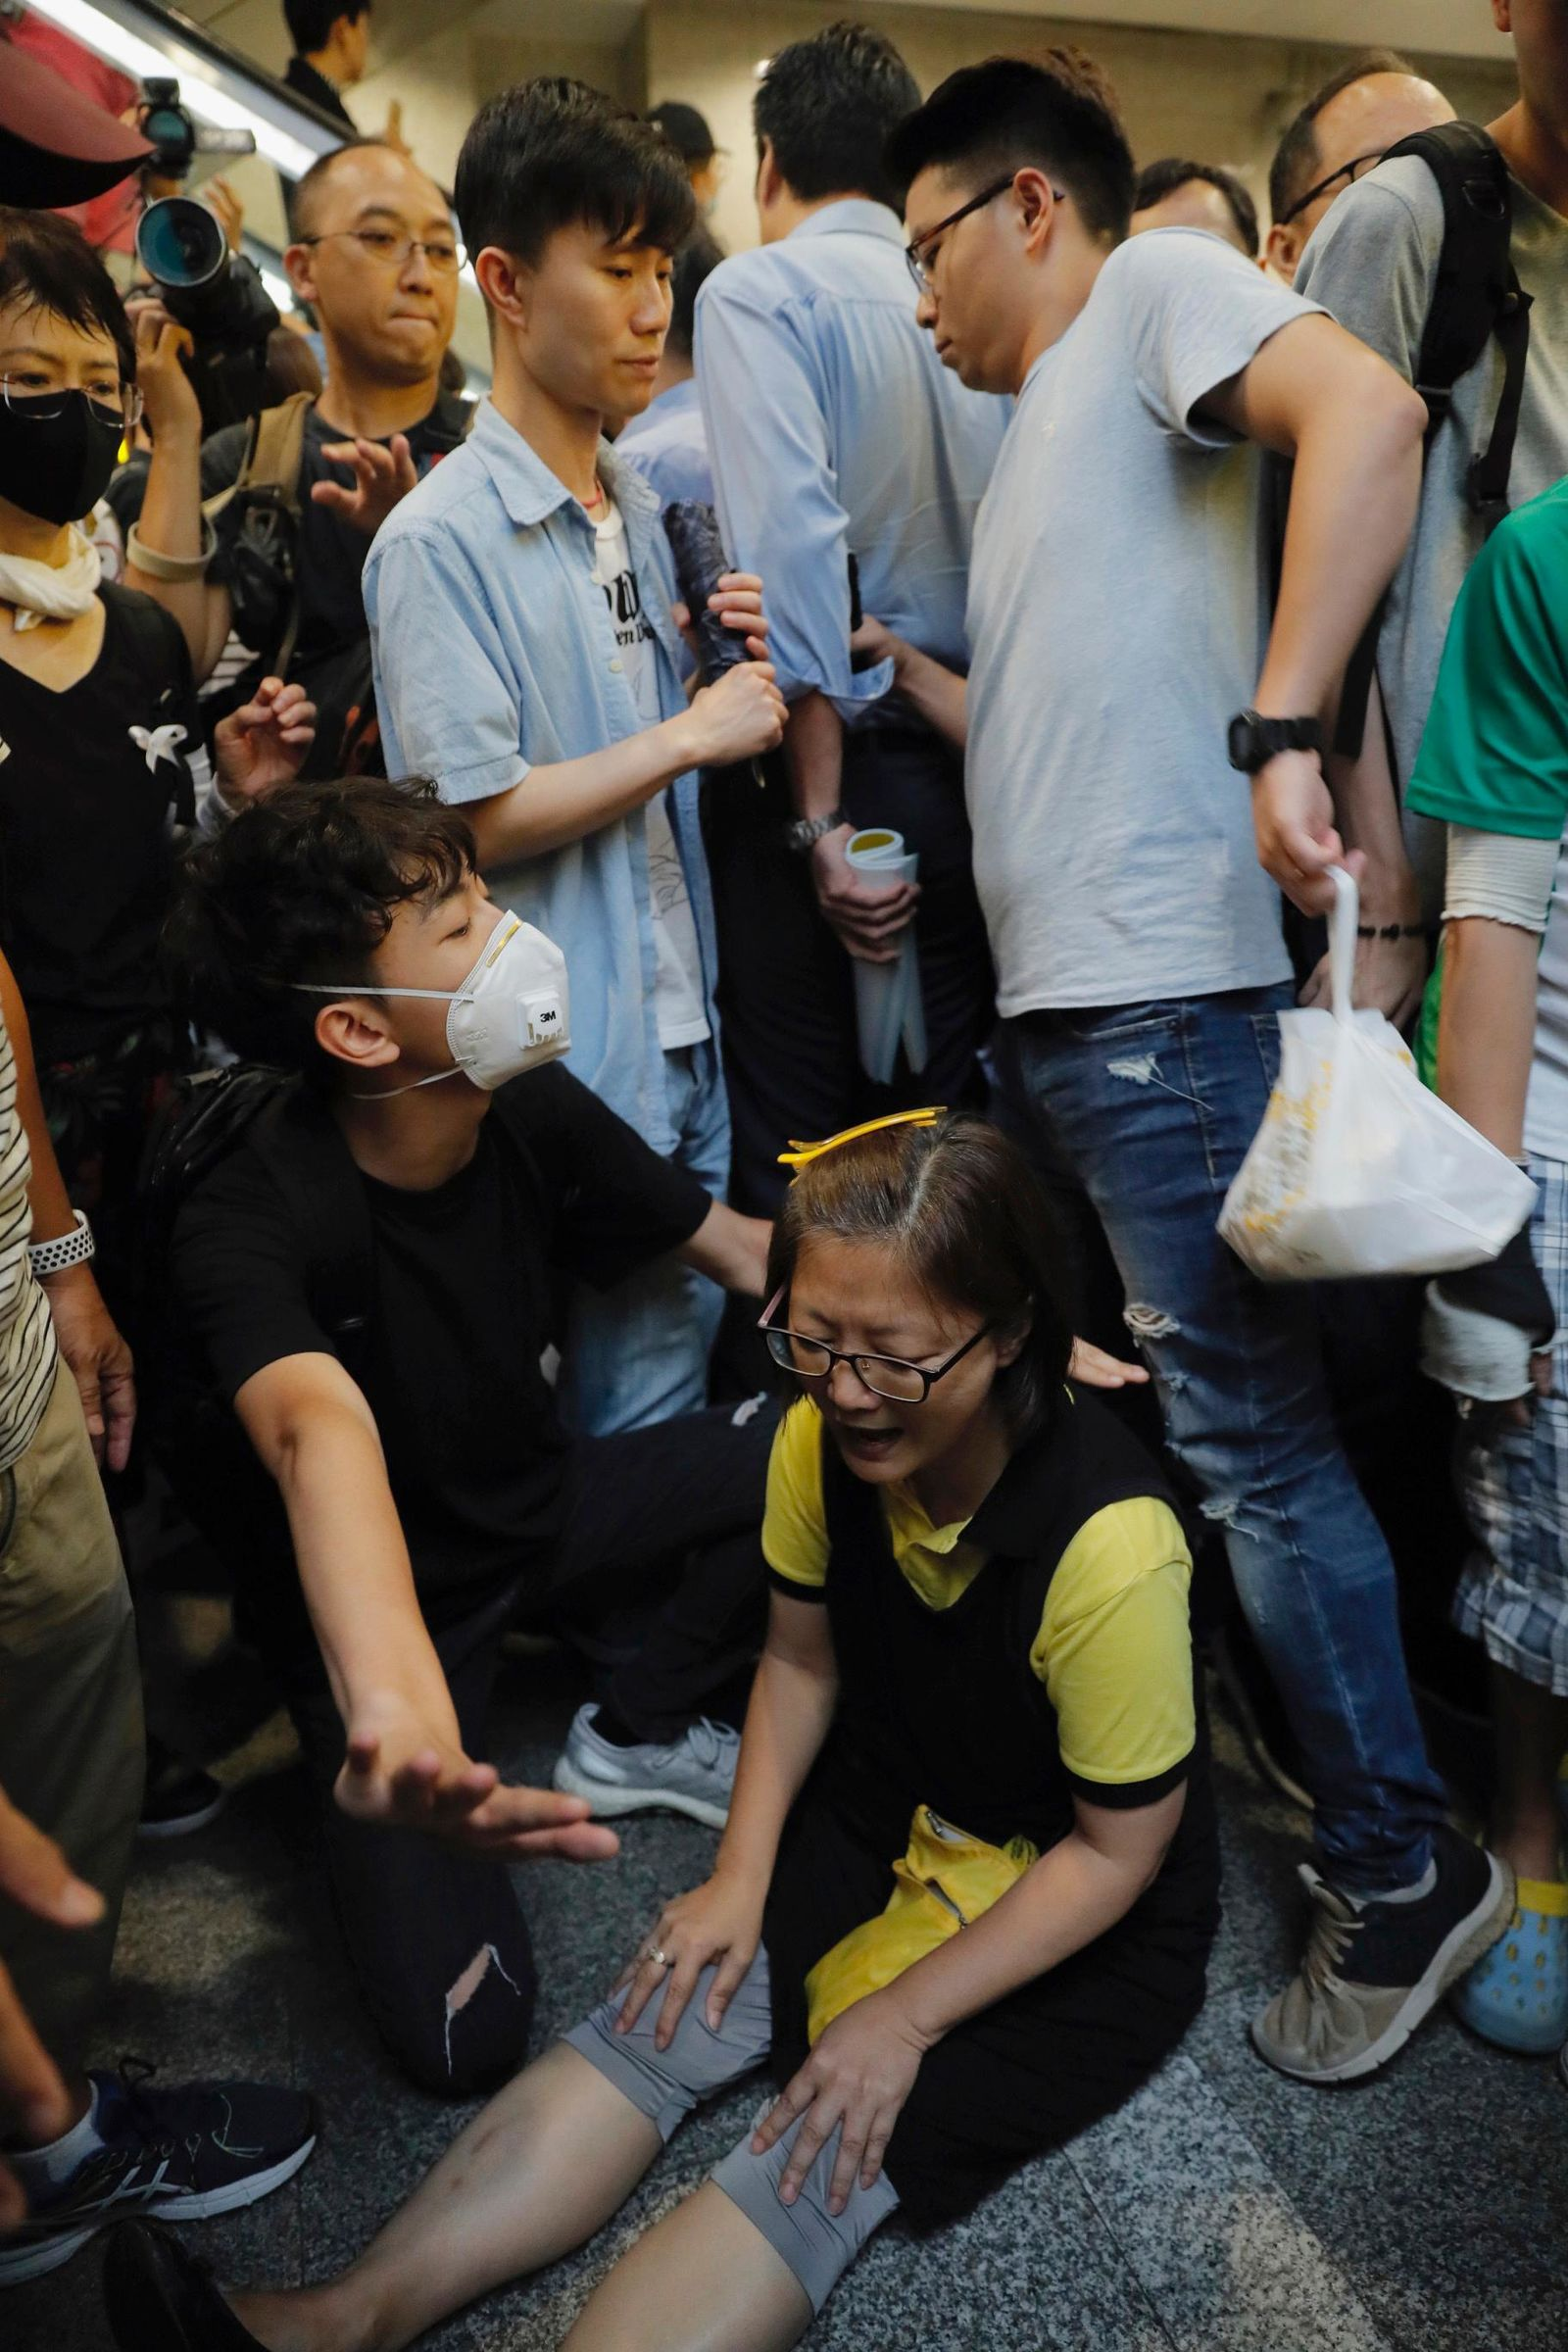 A protester sits down to block visitors in the lobby of the Hong Kong Revenue Tower in Hong Kong on Monday, June 24, 2019.{ } (AP Photo/Kin Cheung)